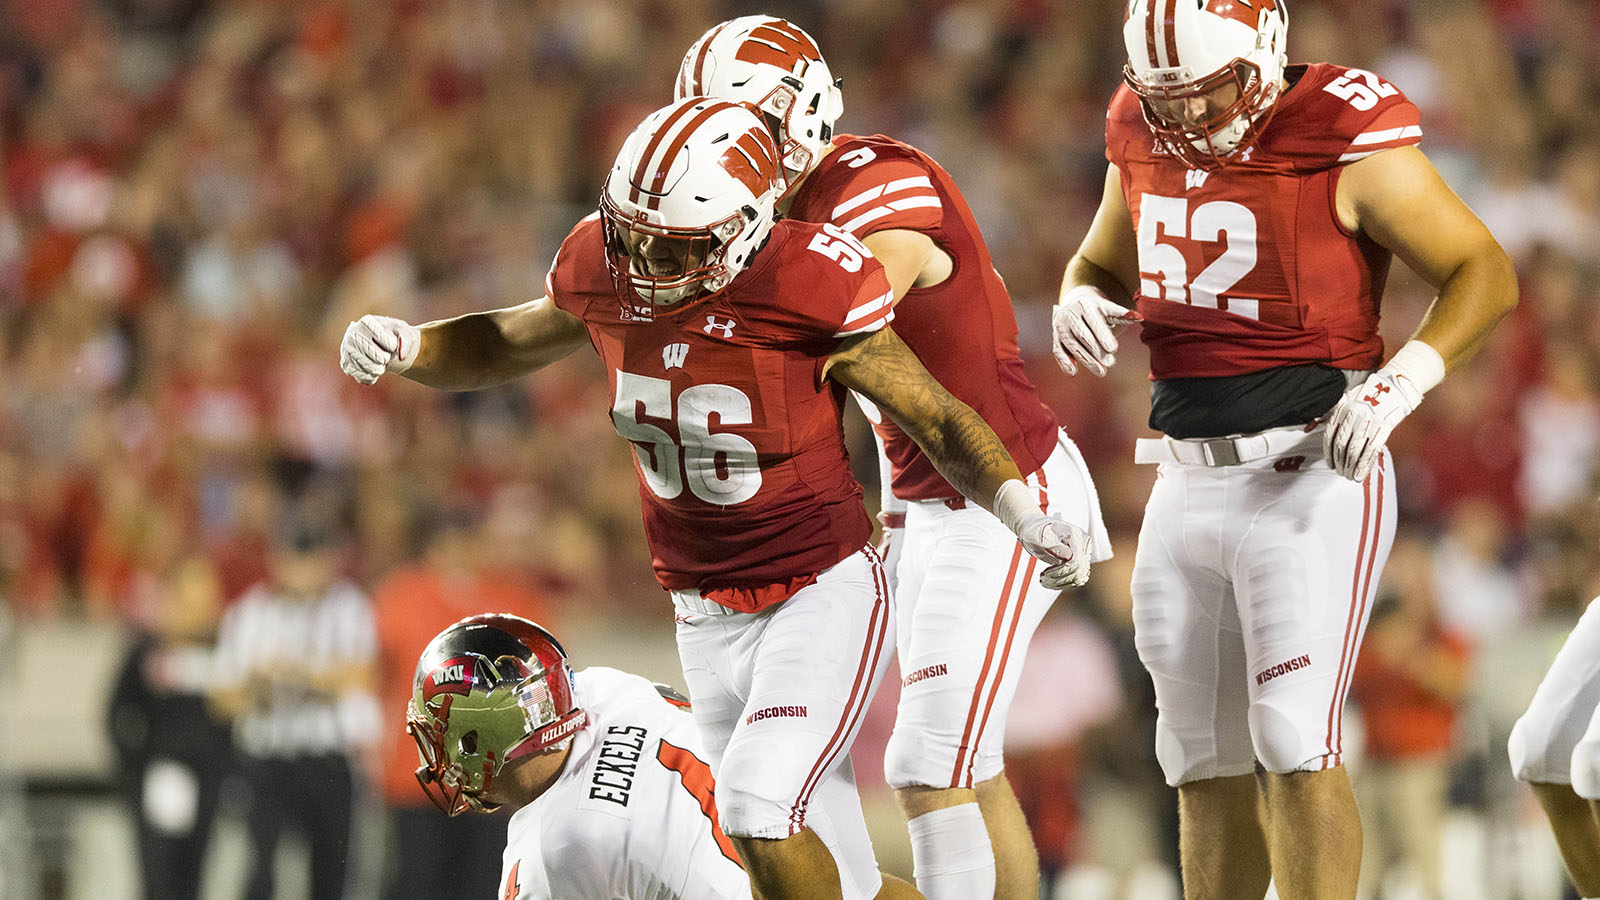 Aug 31, 2018; Madison, WI, USA; Wisconsin Badgers linebacker Zack Baun (56) celebrates after tackling Western Kentucky Hilltoppers quarterback Drew Eckels (4) during the third quarter at Camp Randall Stadium. Mandatory Credit: Jeff Hanisch-USA TODAY Sports